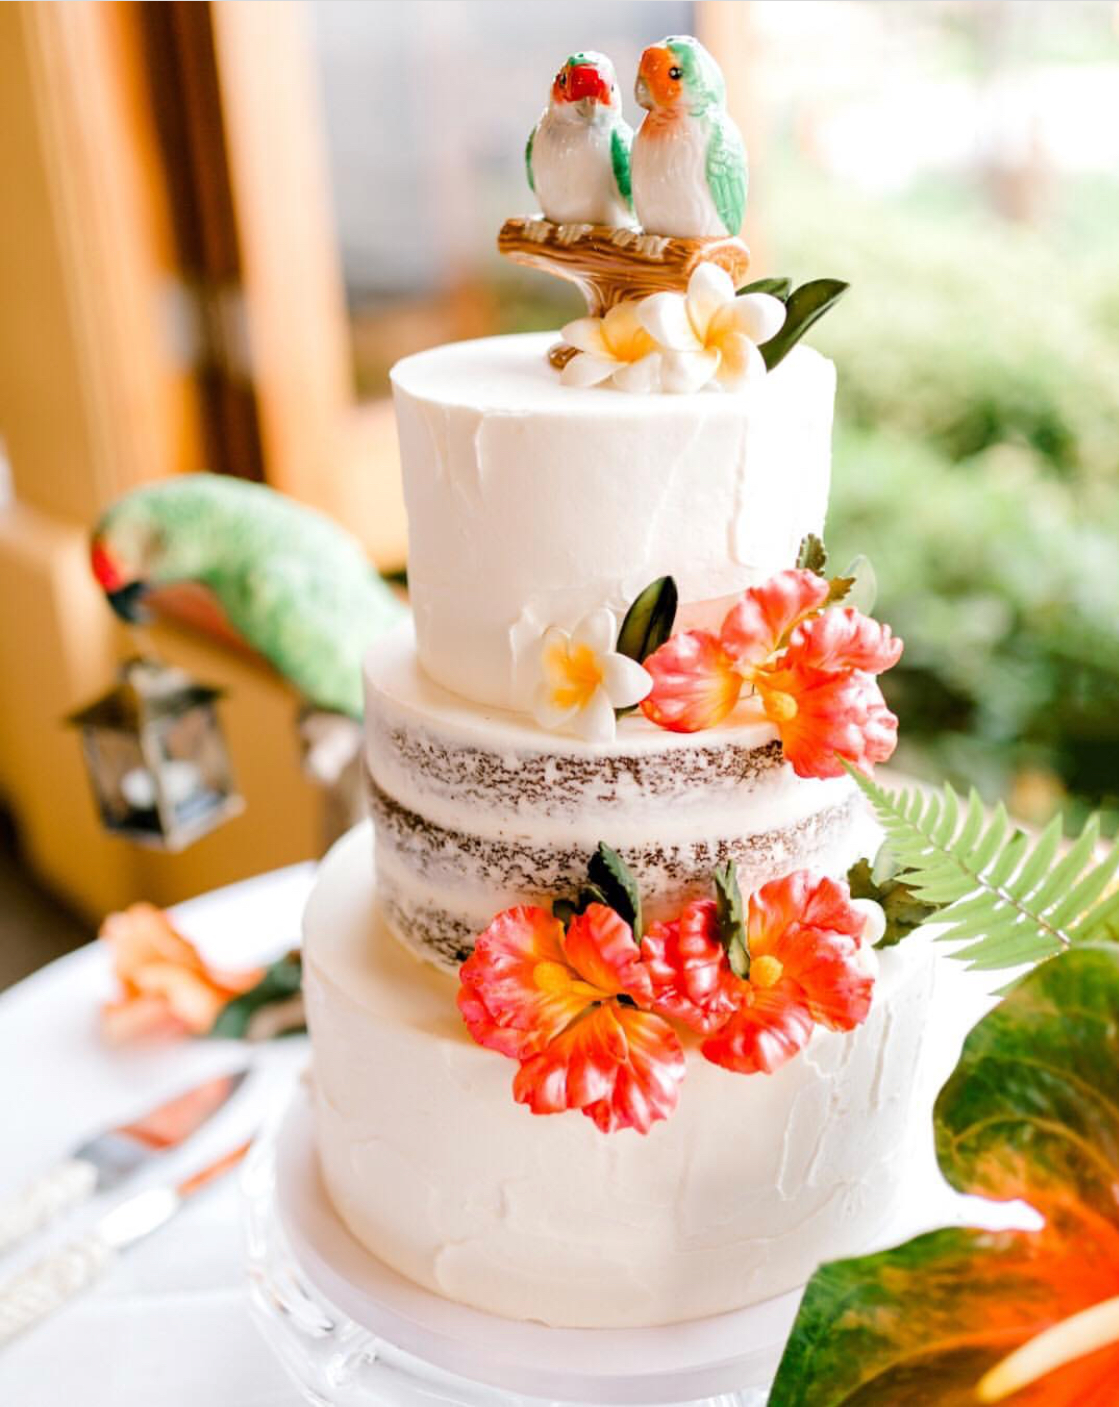 Creative Cakes That Suit Every Style - From elegant, understated cakes to colourful custom confections, Cake Fanatics of Maui consistently deliver top-notch desserts across the islands. Just scroll through their instagram and your mouth will start to water at the vast array of cakes, featuring everything from four tiers of florals to a surfer catching a blue-crested wave of frosting. So whether you're looking to celebrate your event with a custom cake, cupcakes, macaroons, mini bundts, or a candy buffet - rest assured that Cake Fanatics will bring not only the flavour, but the creativity as well.Visit WebsiteMaui, HawaiiPhone: 1 808 214 7767Email: celebrate@cakefanaticsmaui.com